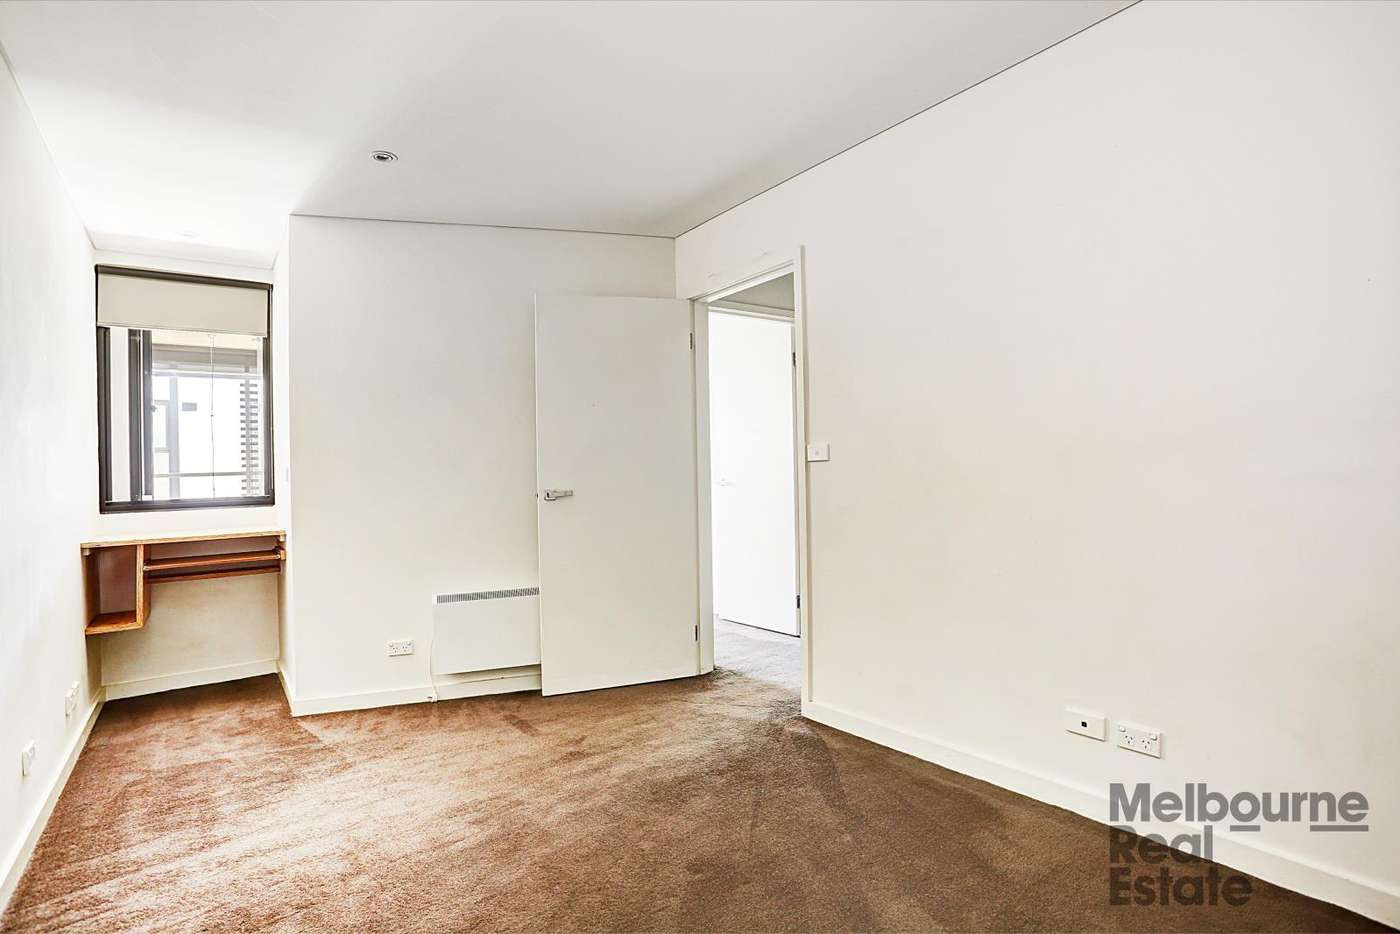 Fifth view of Homely apartment listing, 307/350 Victoria Street, North Melbourne VIC 3051